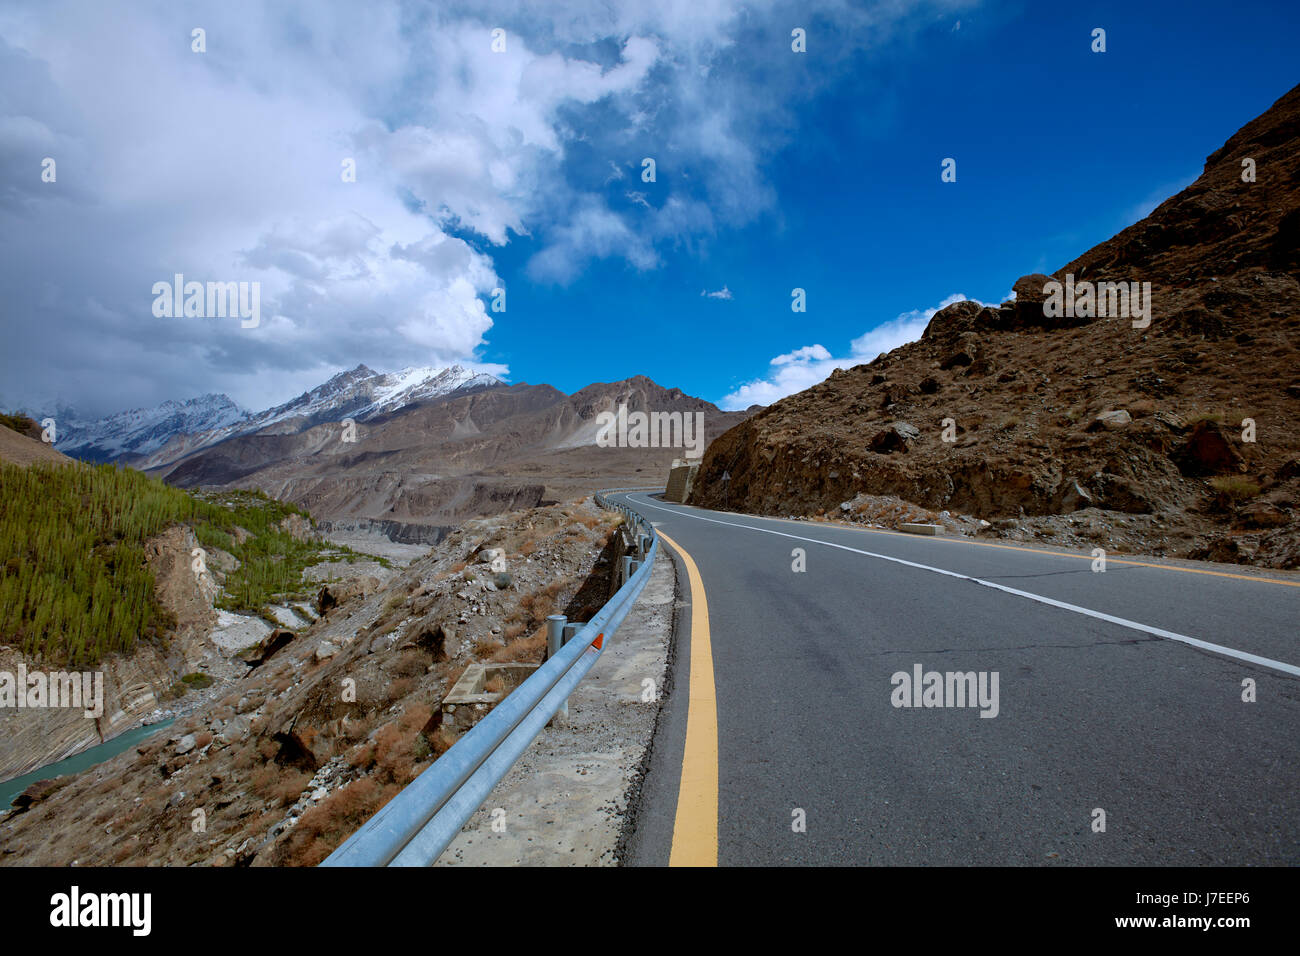 Karakoram Highway - Stock Image